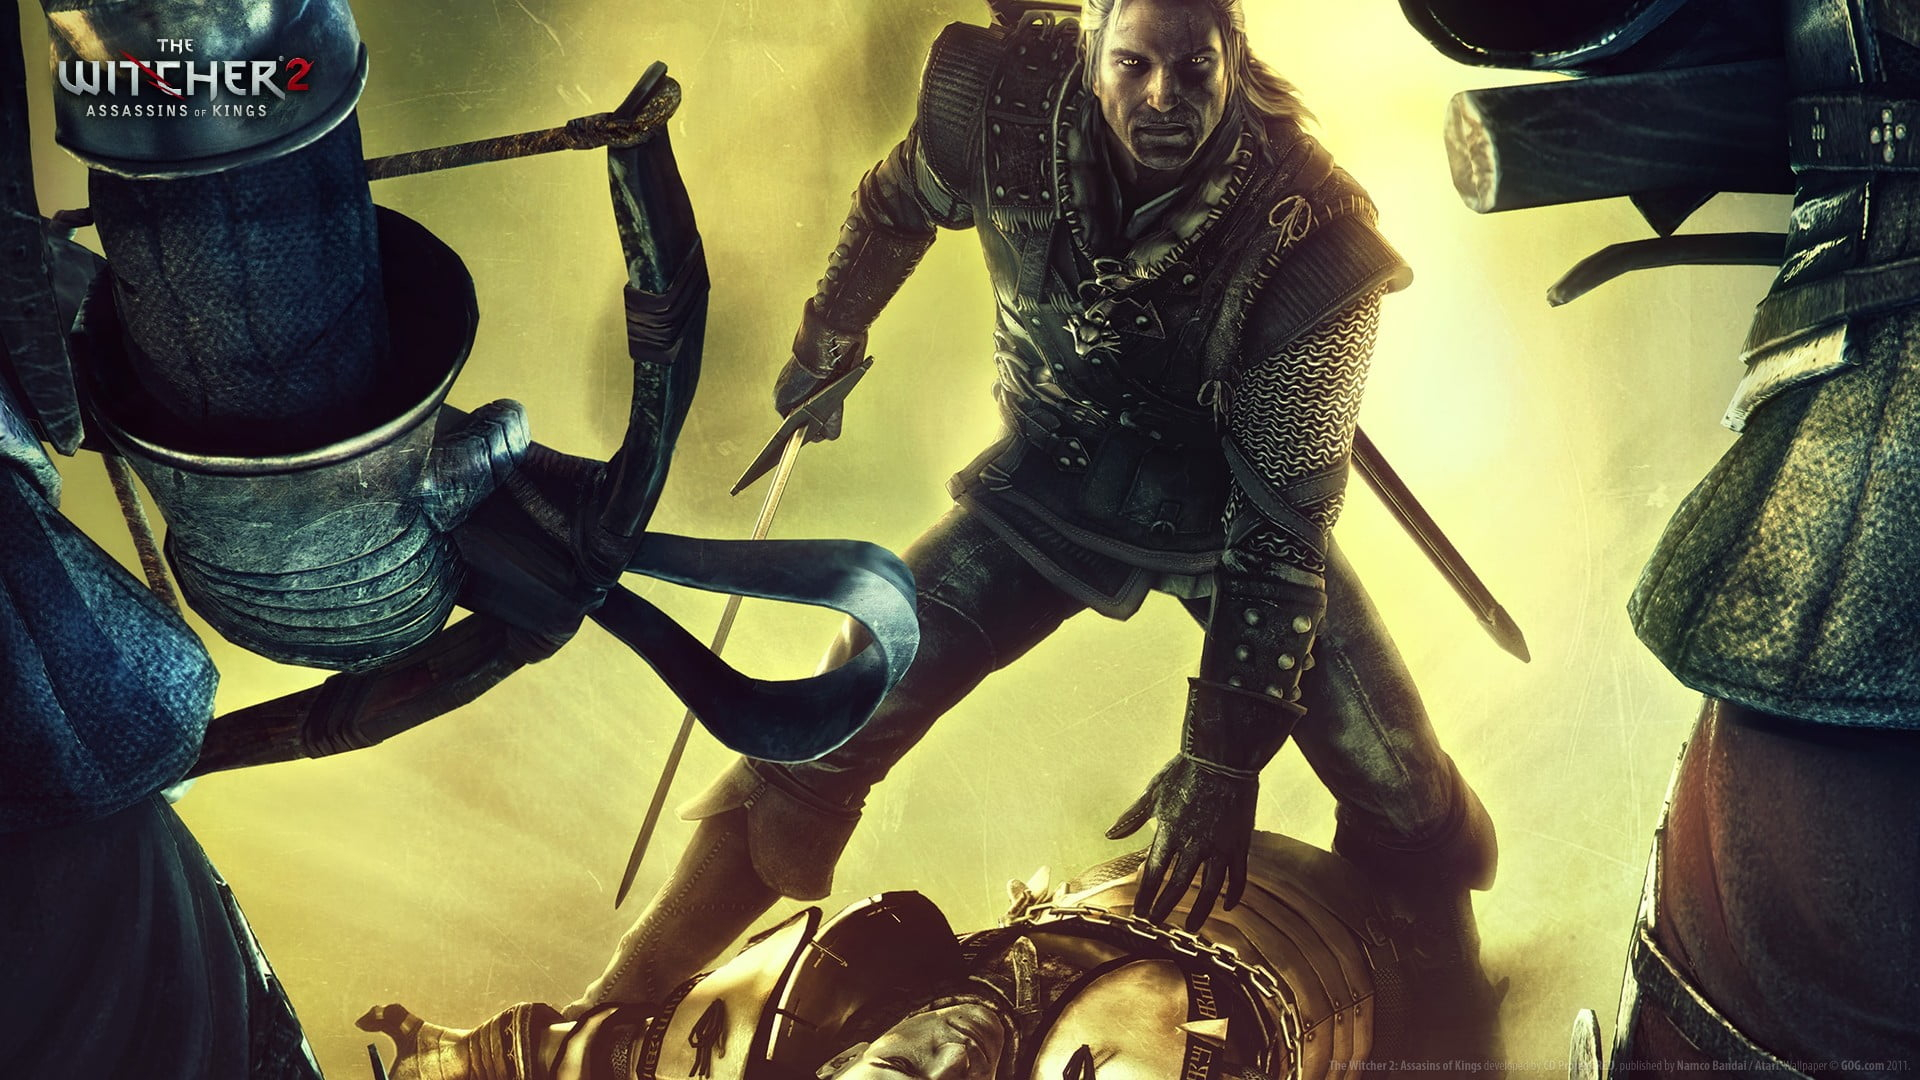 the witcher 2 artwork the witcher 2 assassins of kings the witcher geralt of rivia wallpaper